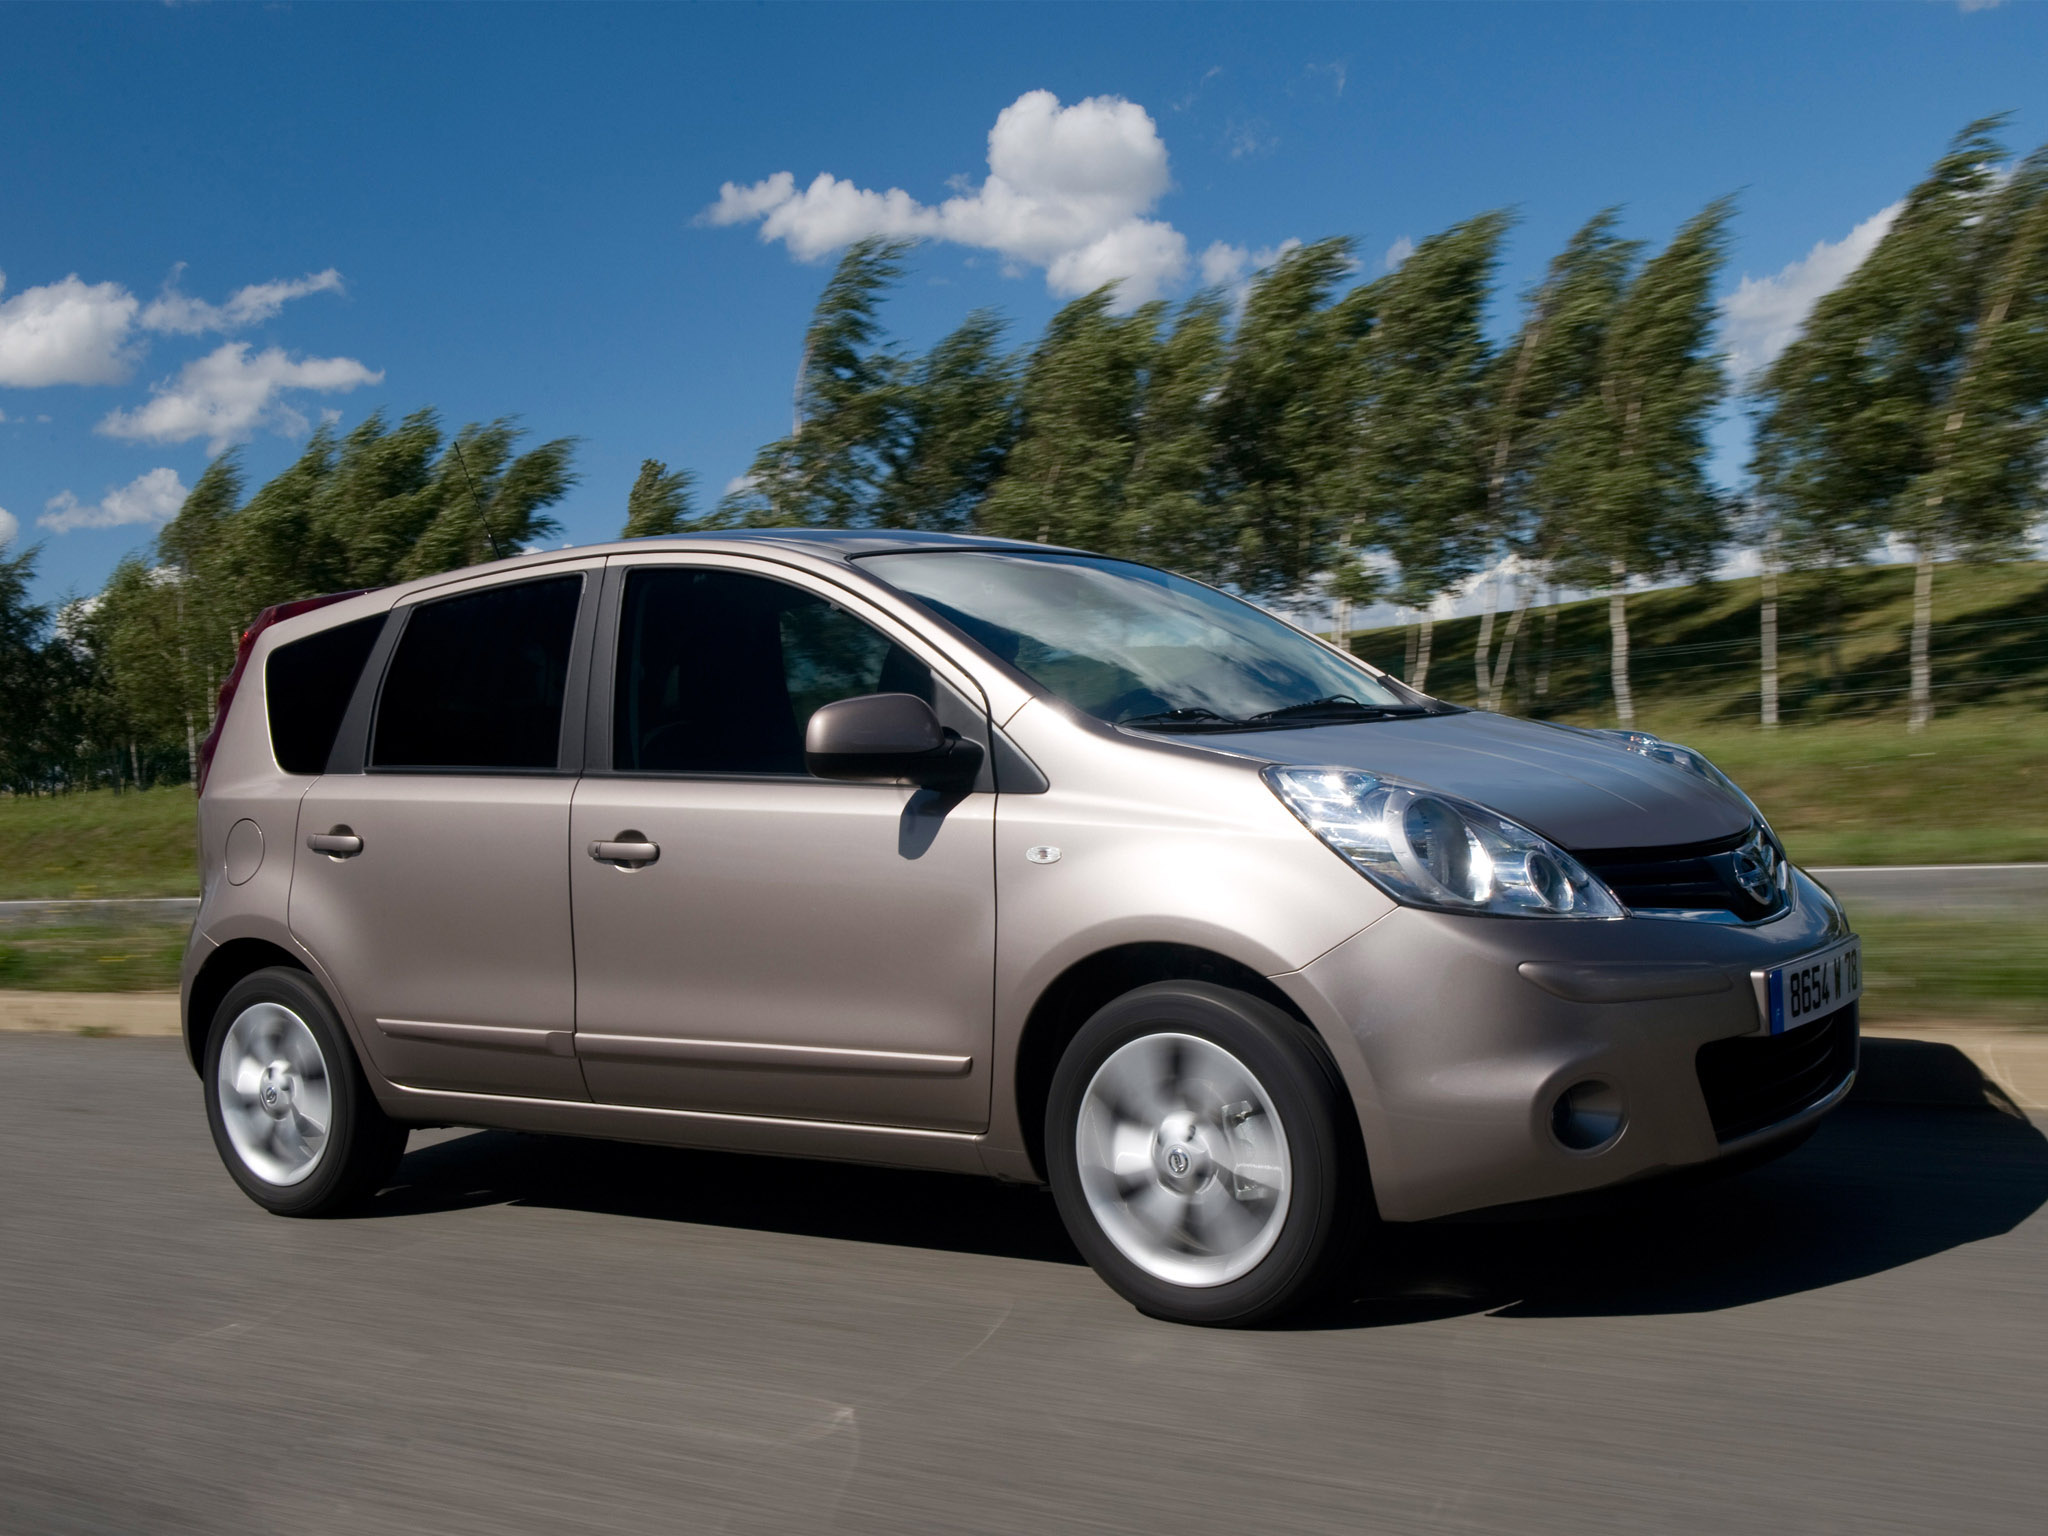 nissan note uk 2008 nissan note uk 2008 photo 02 car in pictures car photo gallery. Black Bedroom Furniture Sets. Home Design Ideas